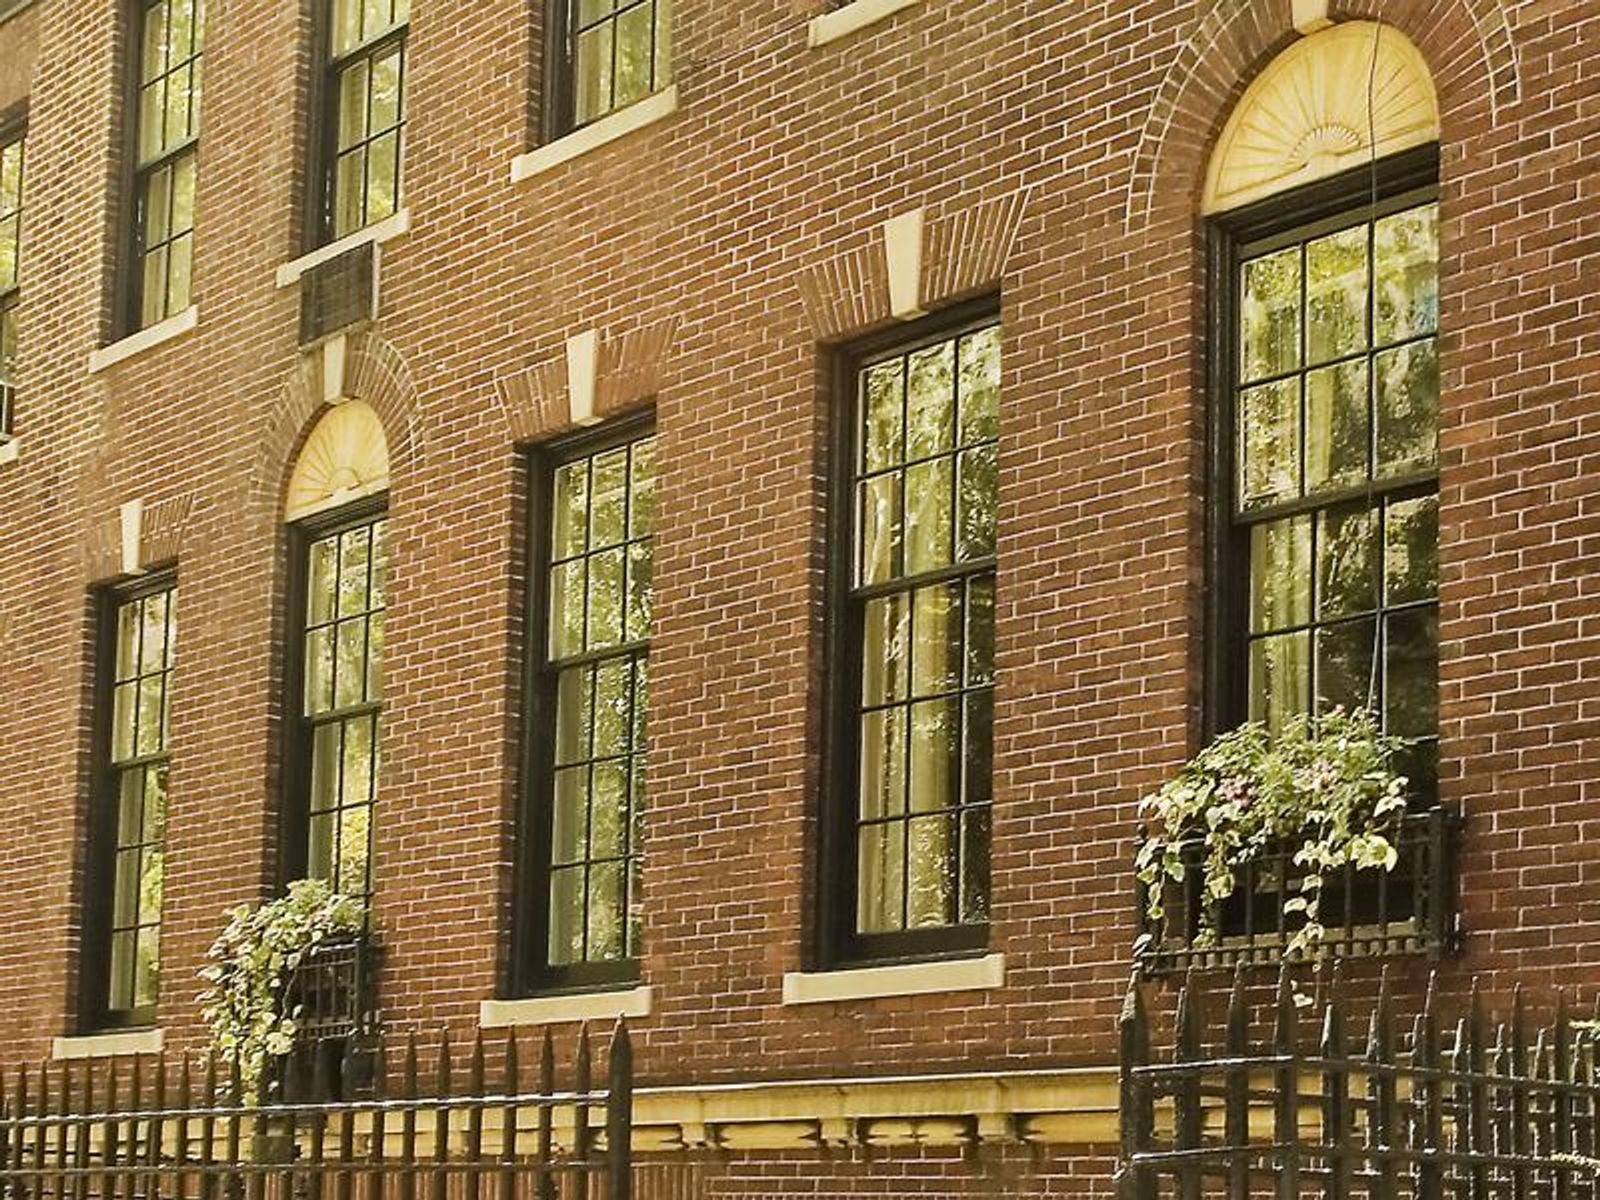 152-156 East 81st Street, New York NY Townhouse - New York City Real Estate